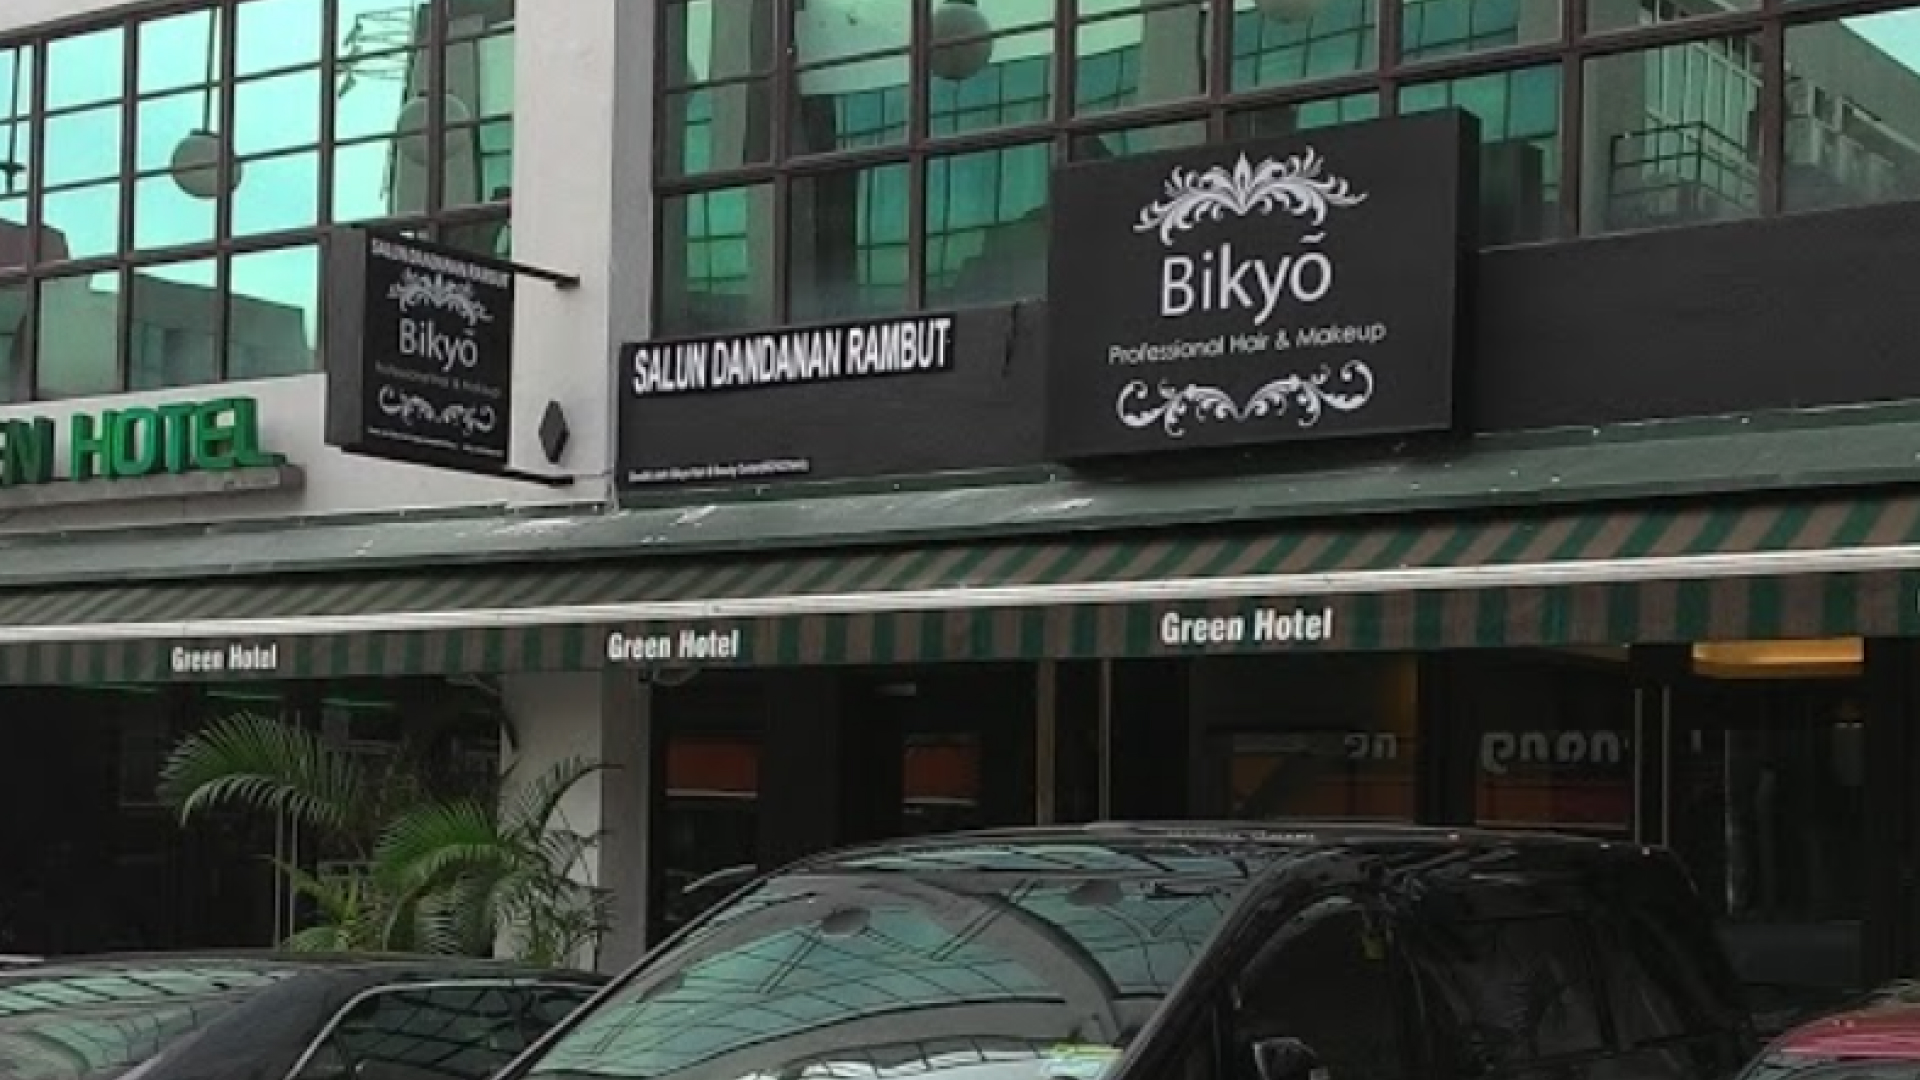 Bikyo Hair & Beauty Center